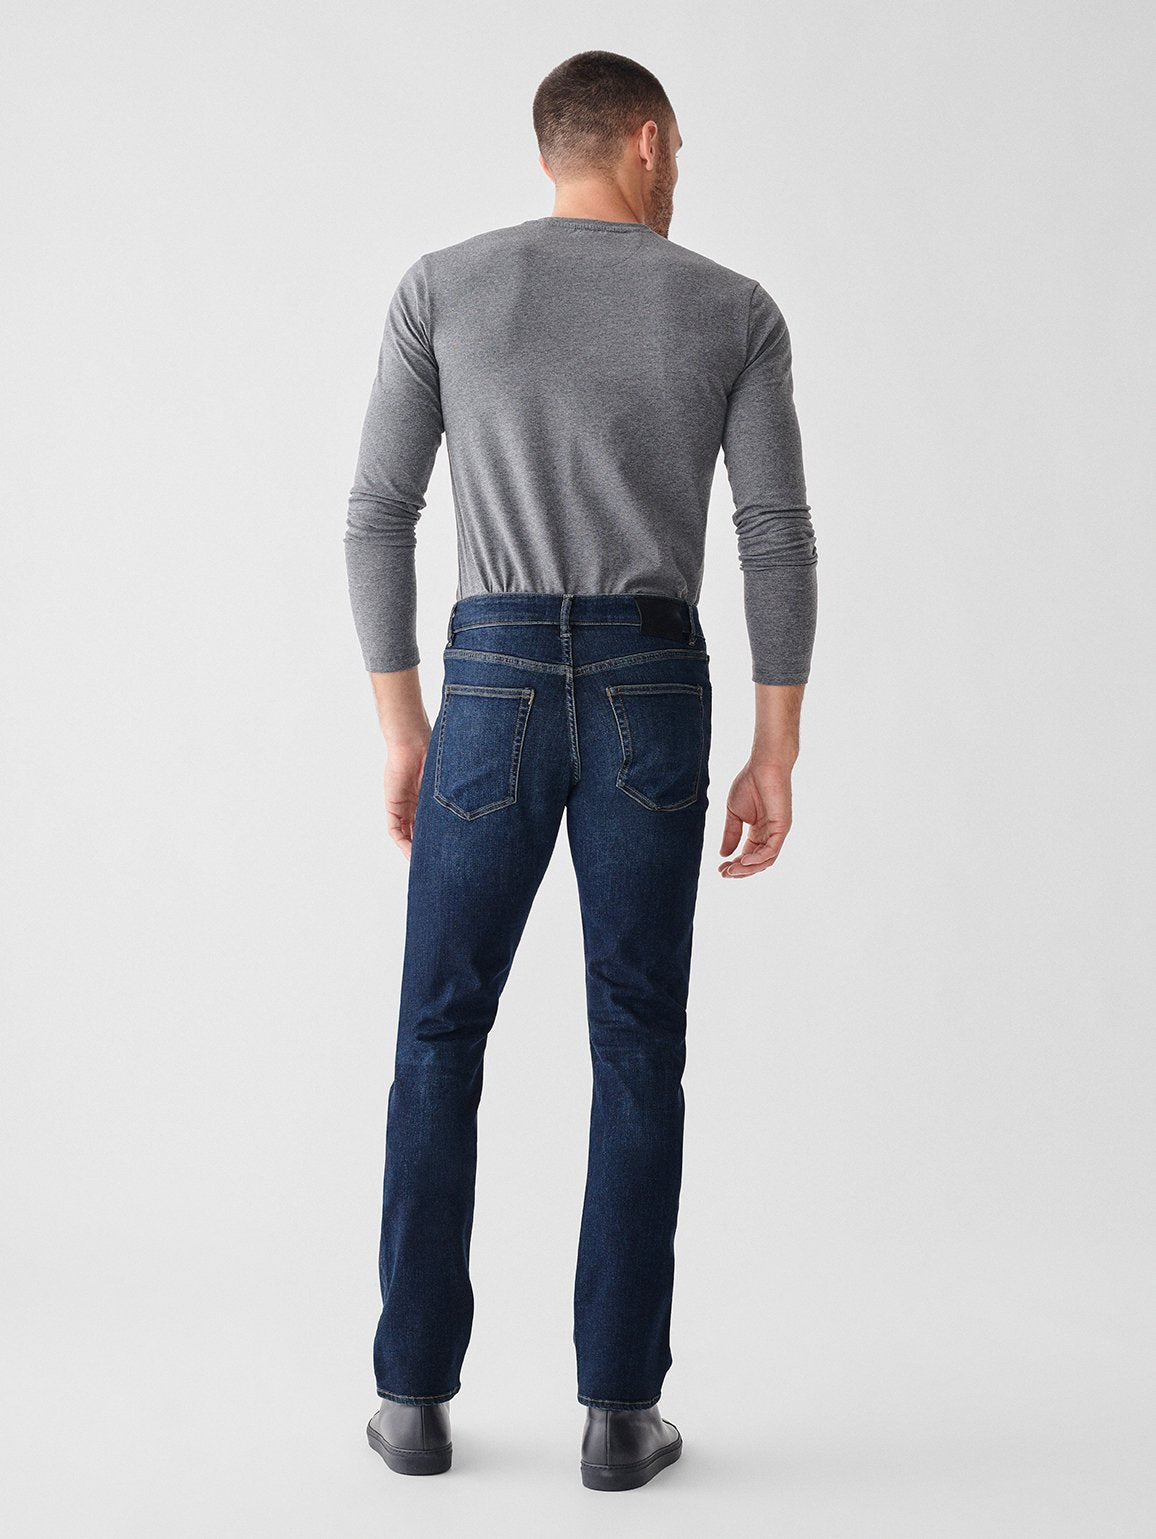 Dl1961 Russell Slim Straight Jean 10664-HECTIC